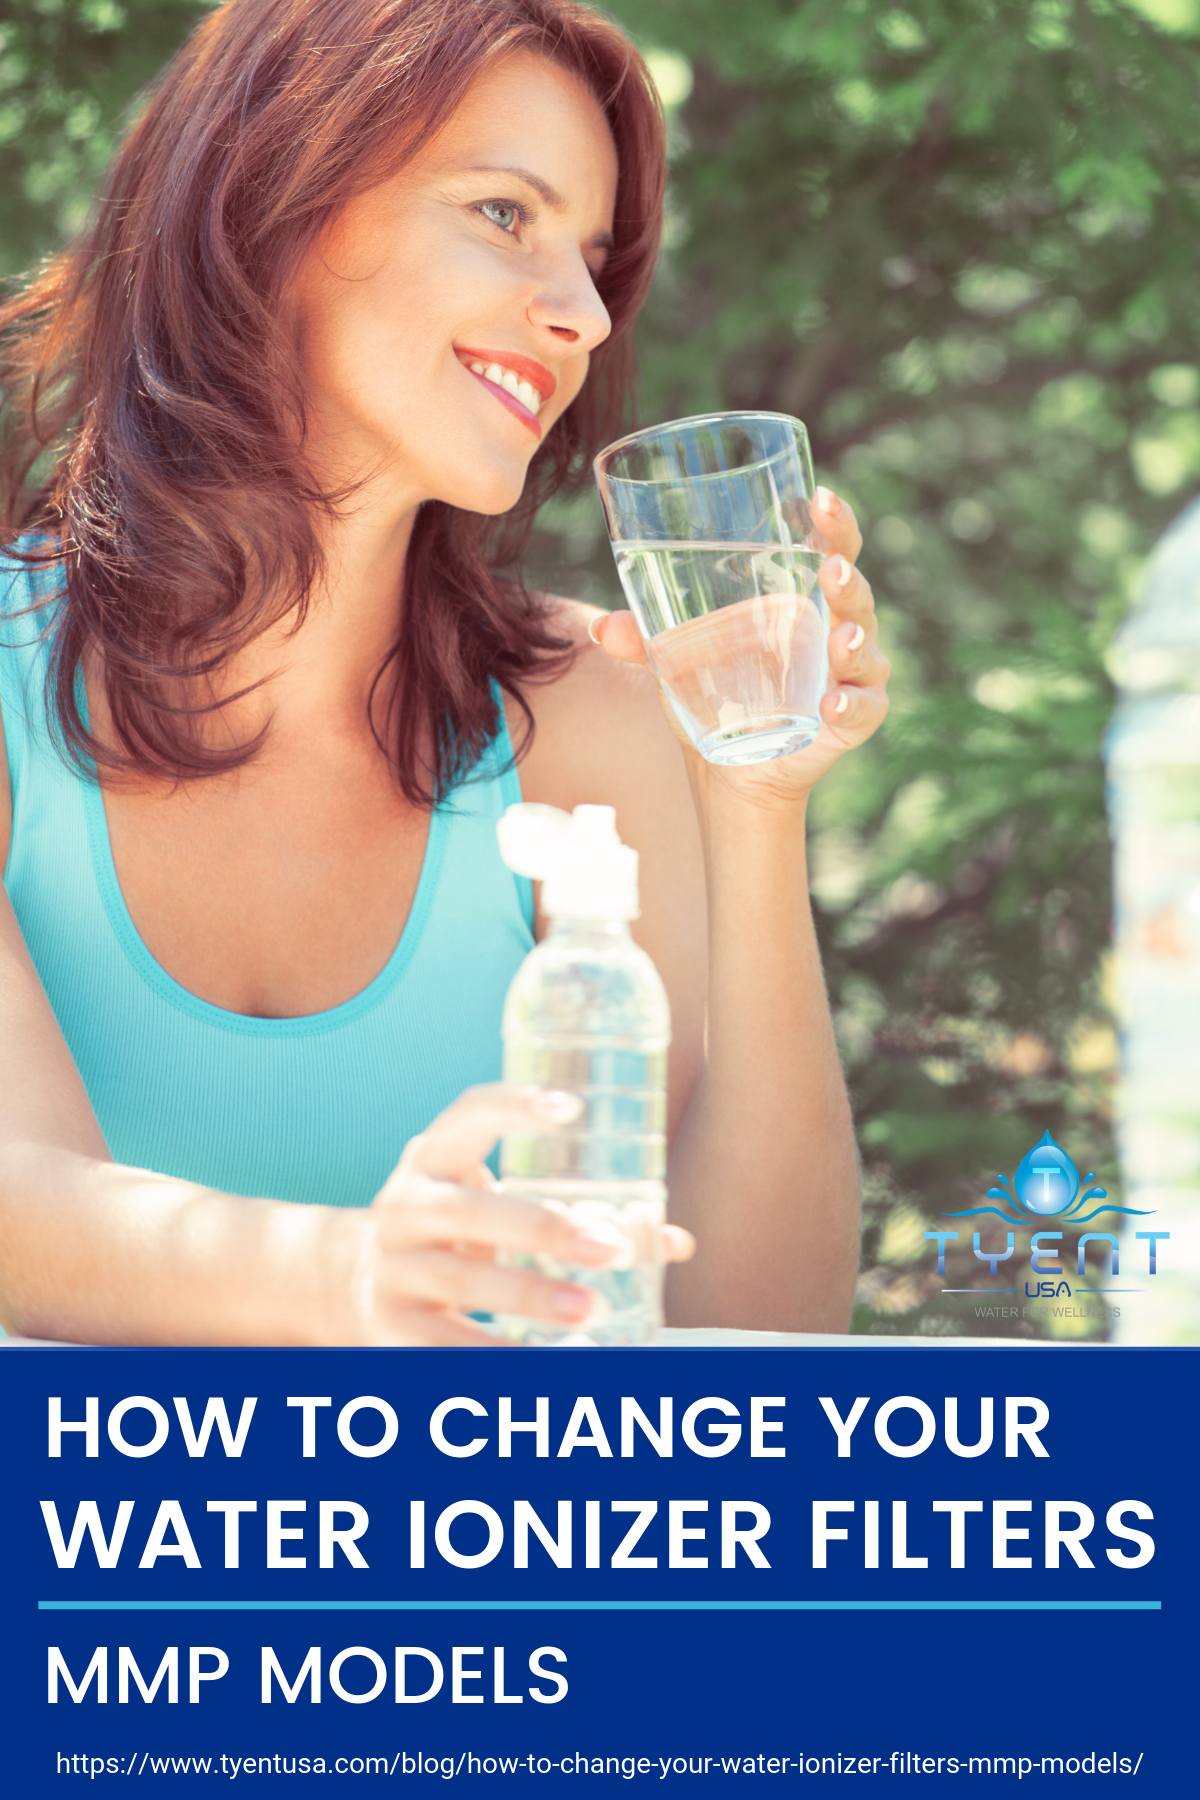 How To Change Your Water Ionizer Filters: MMP Models https://www.tyentusa.com/blog/how-to-change-your-water-ionizer-filters-mmp-models/